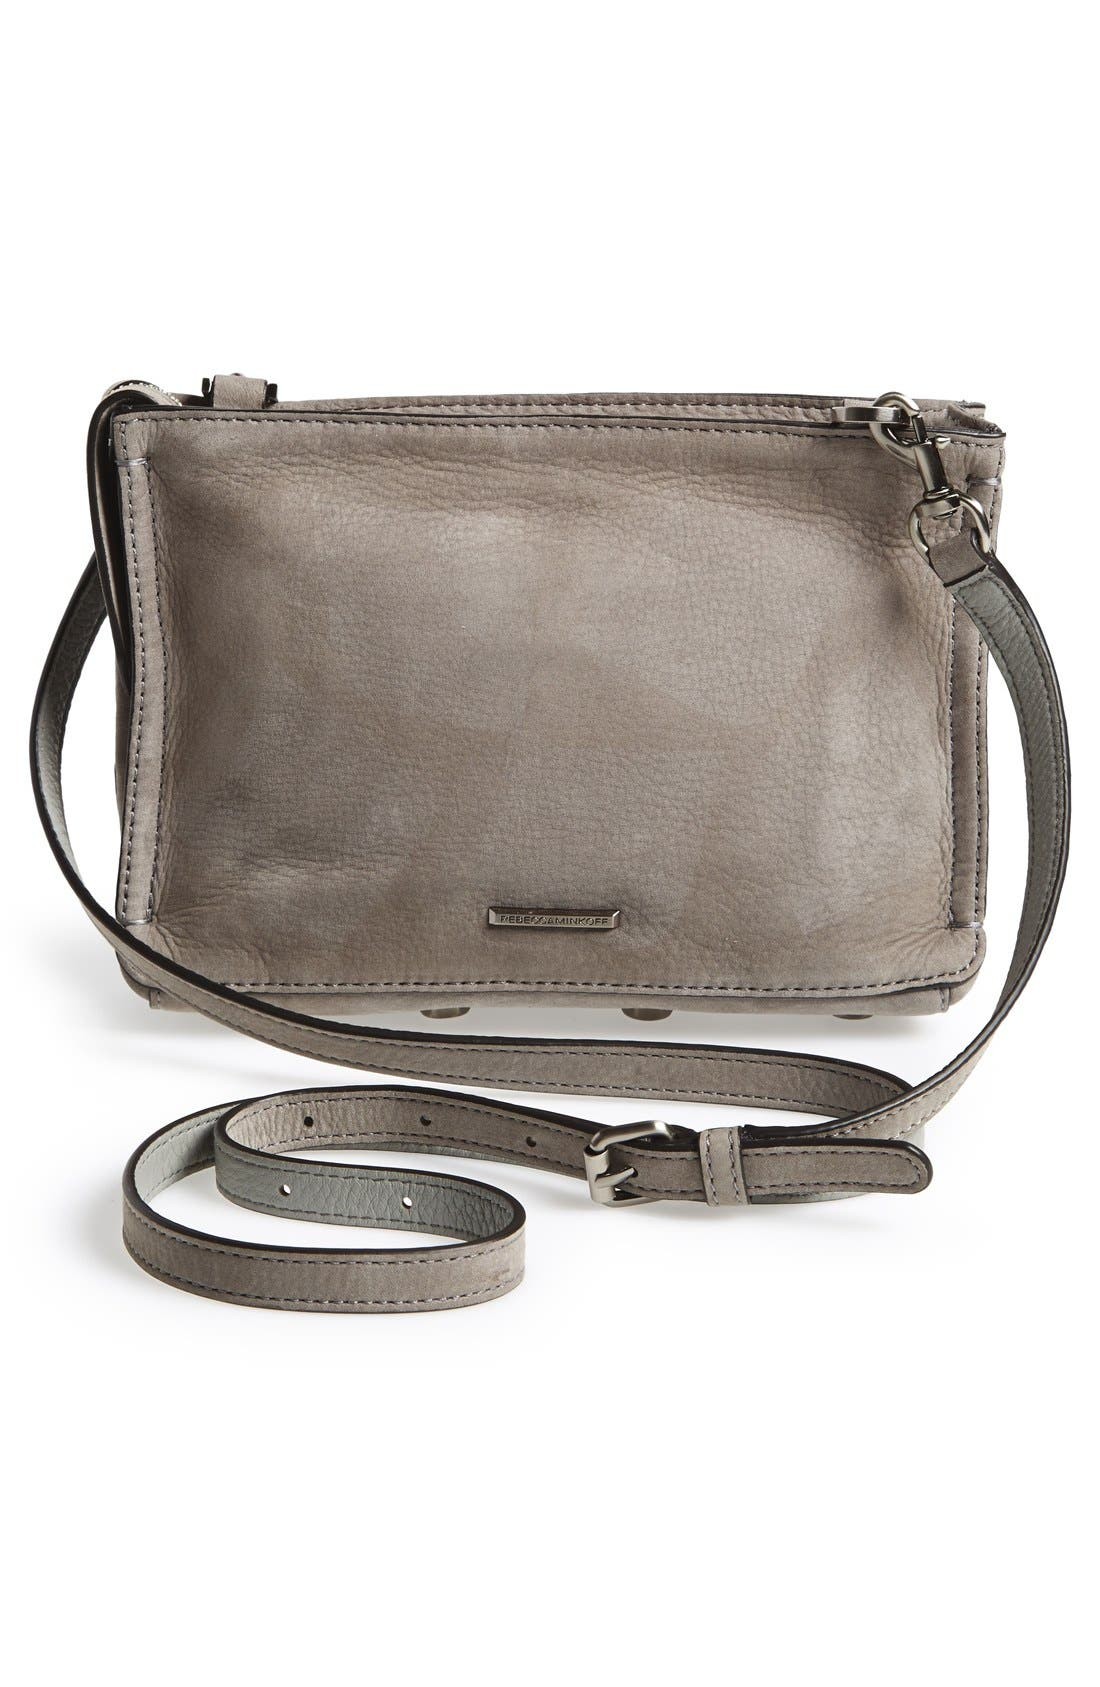 'Regan' Crossbody Bag,                             Alternate thumbnail 3, color,                             020